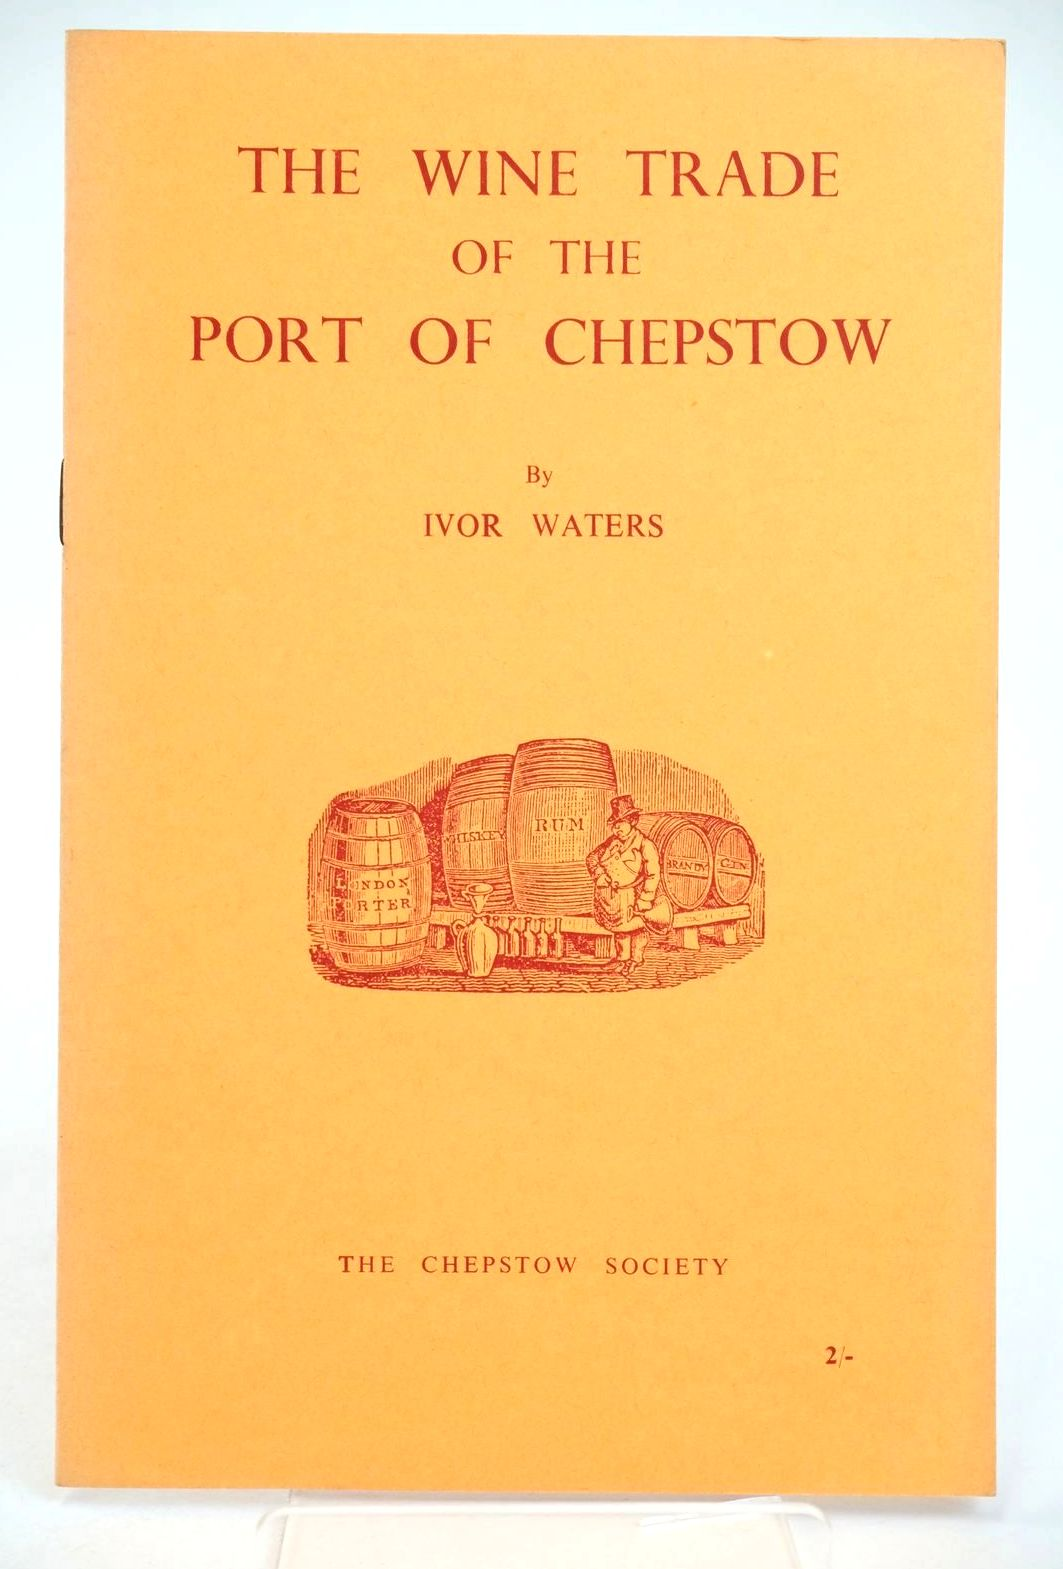 Photo of THE WINE TRADE OF THE PORT OF CHEPSTOW